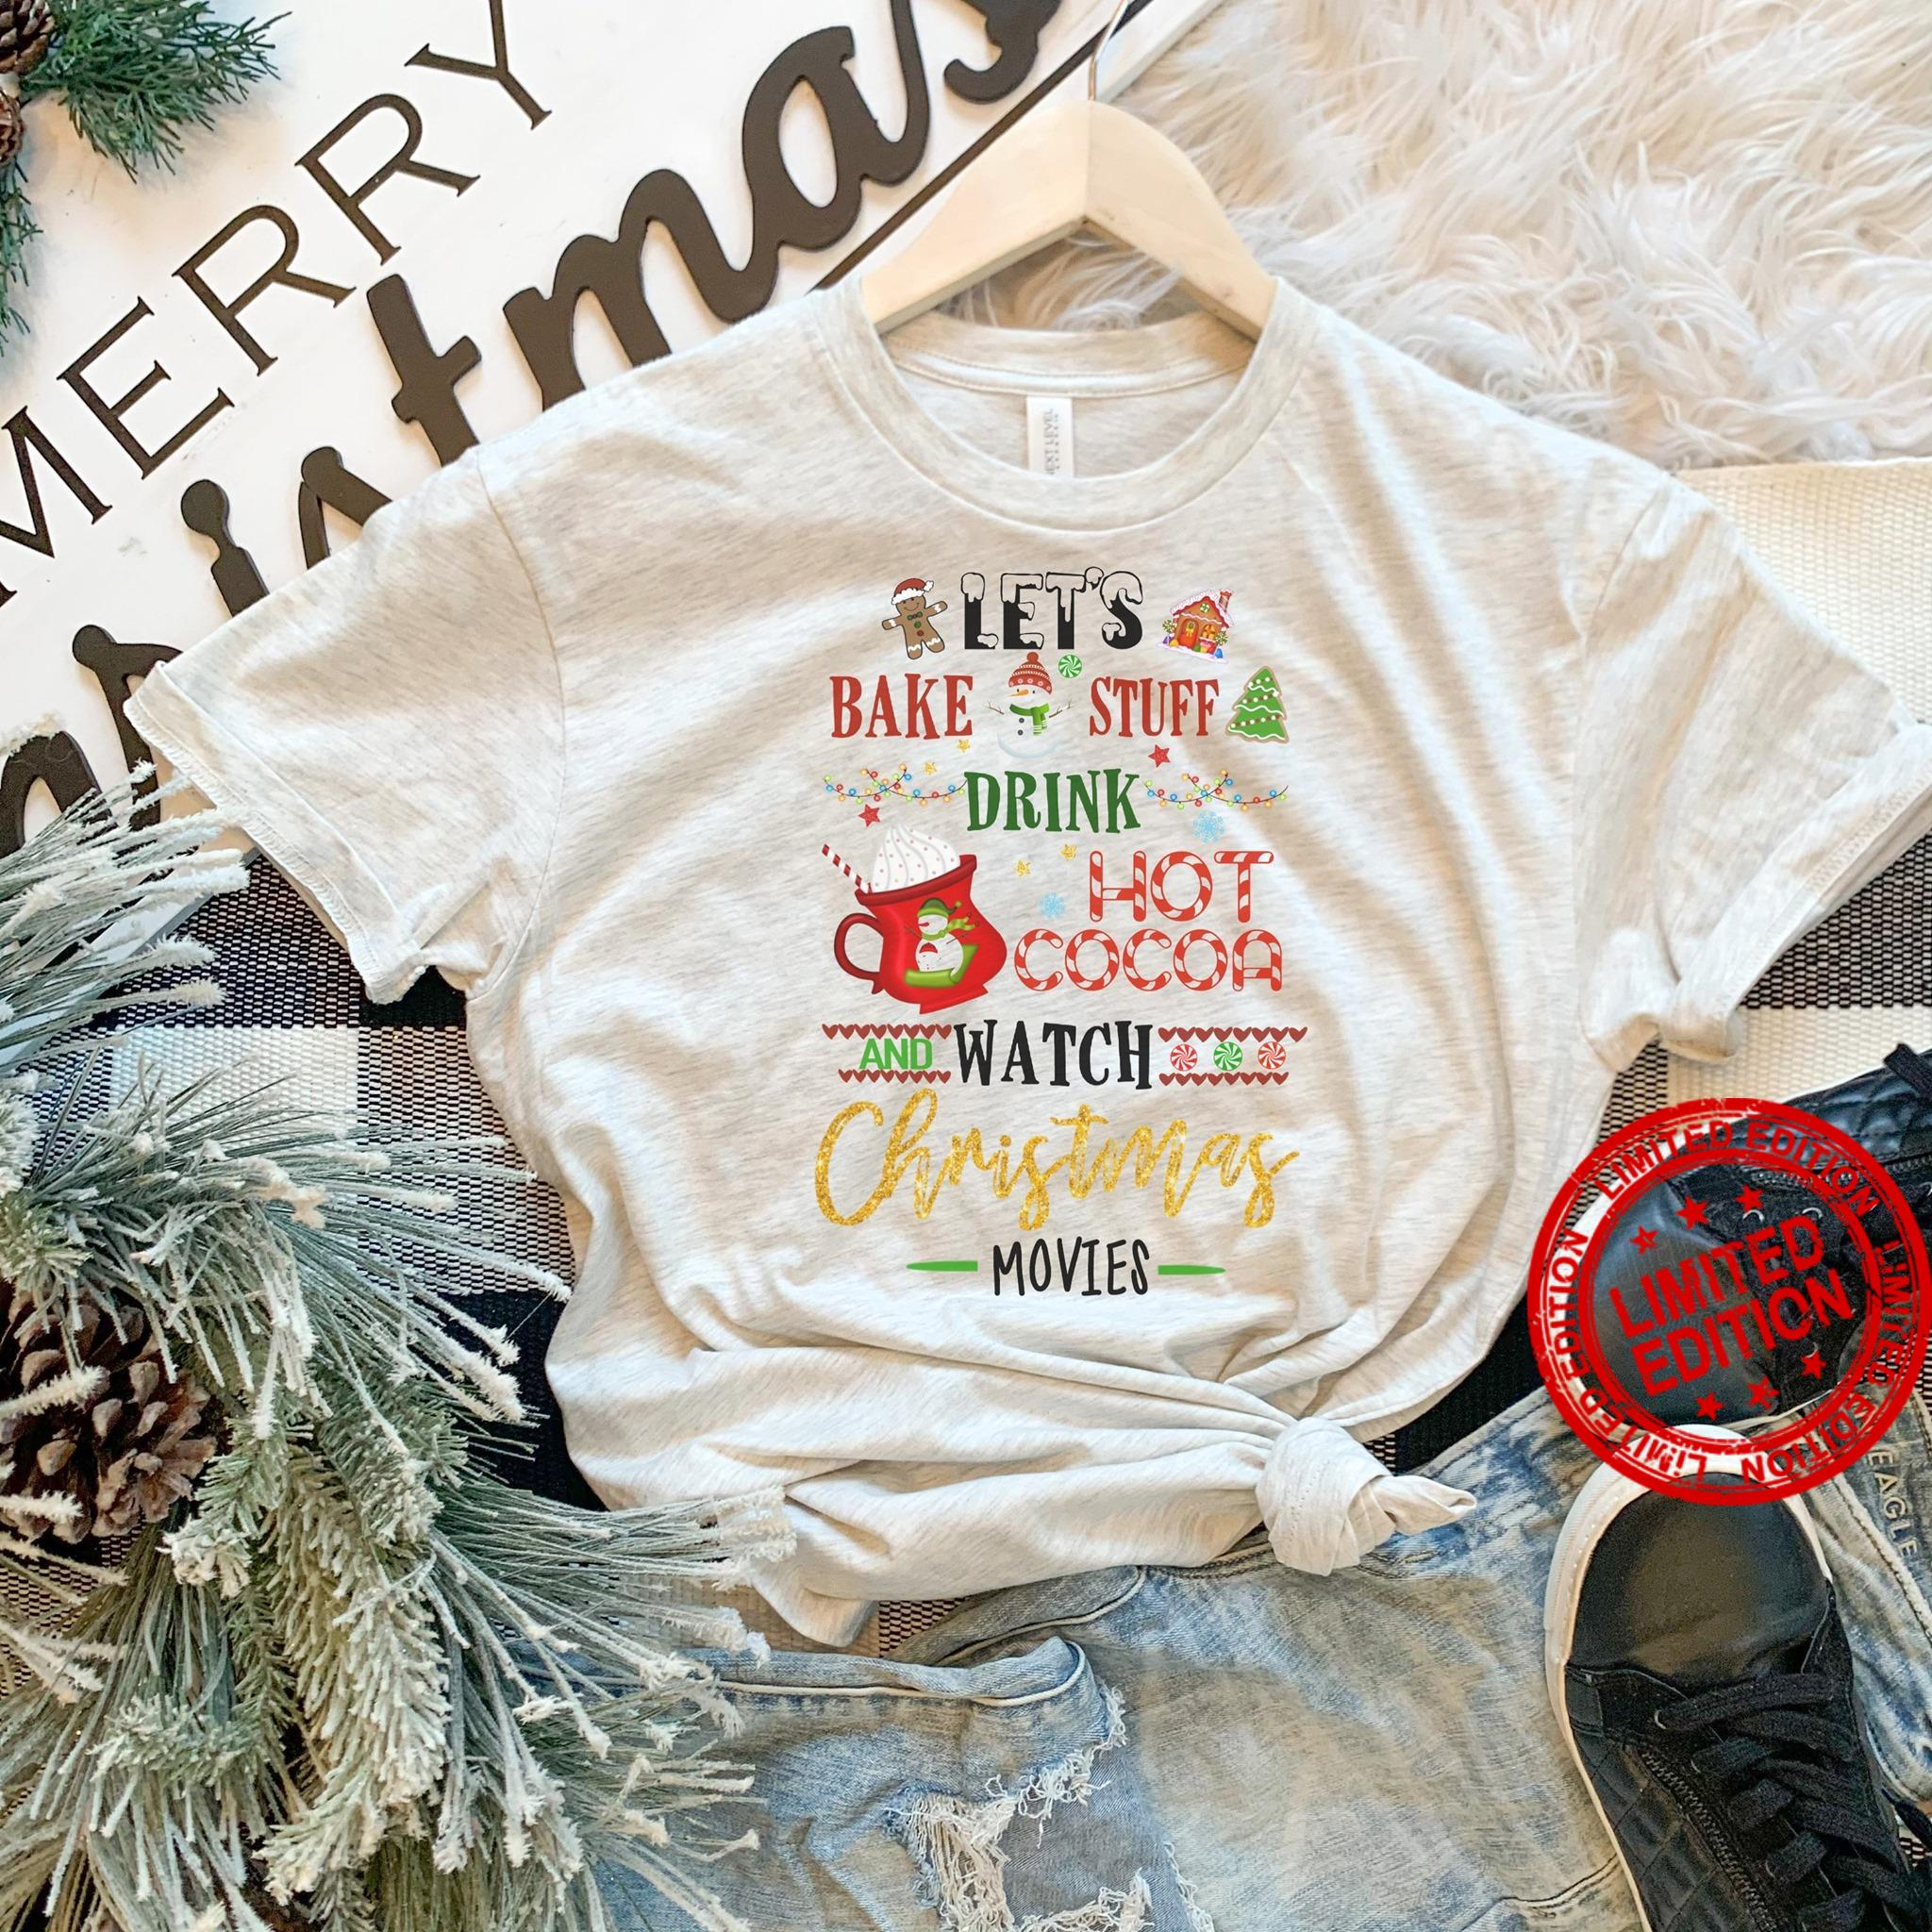 Let's Bake Stuff Drink Hot Cocoa Watch Christmas Movies Shirt